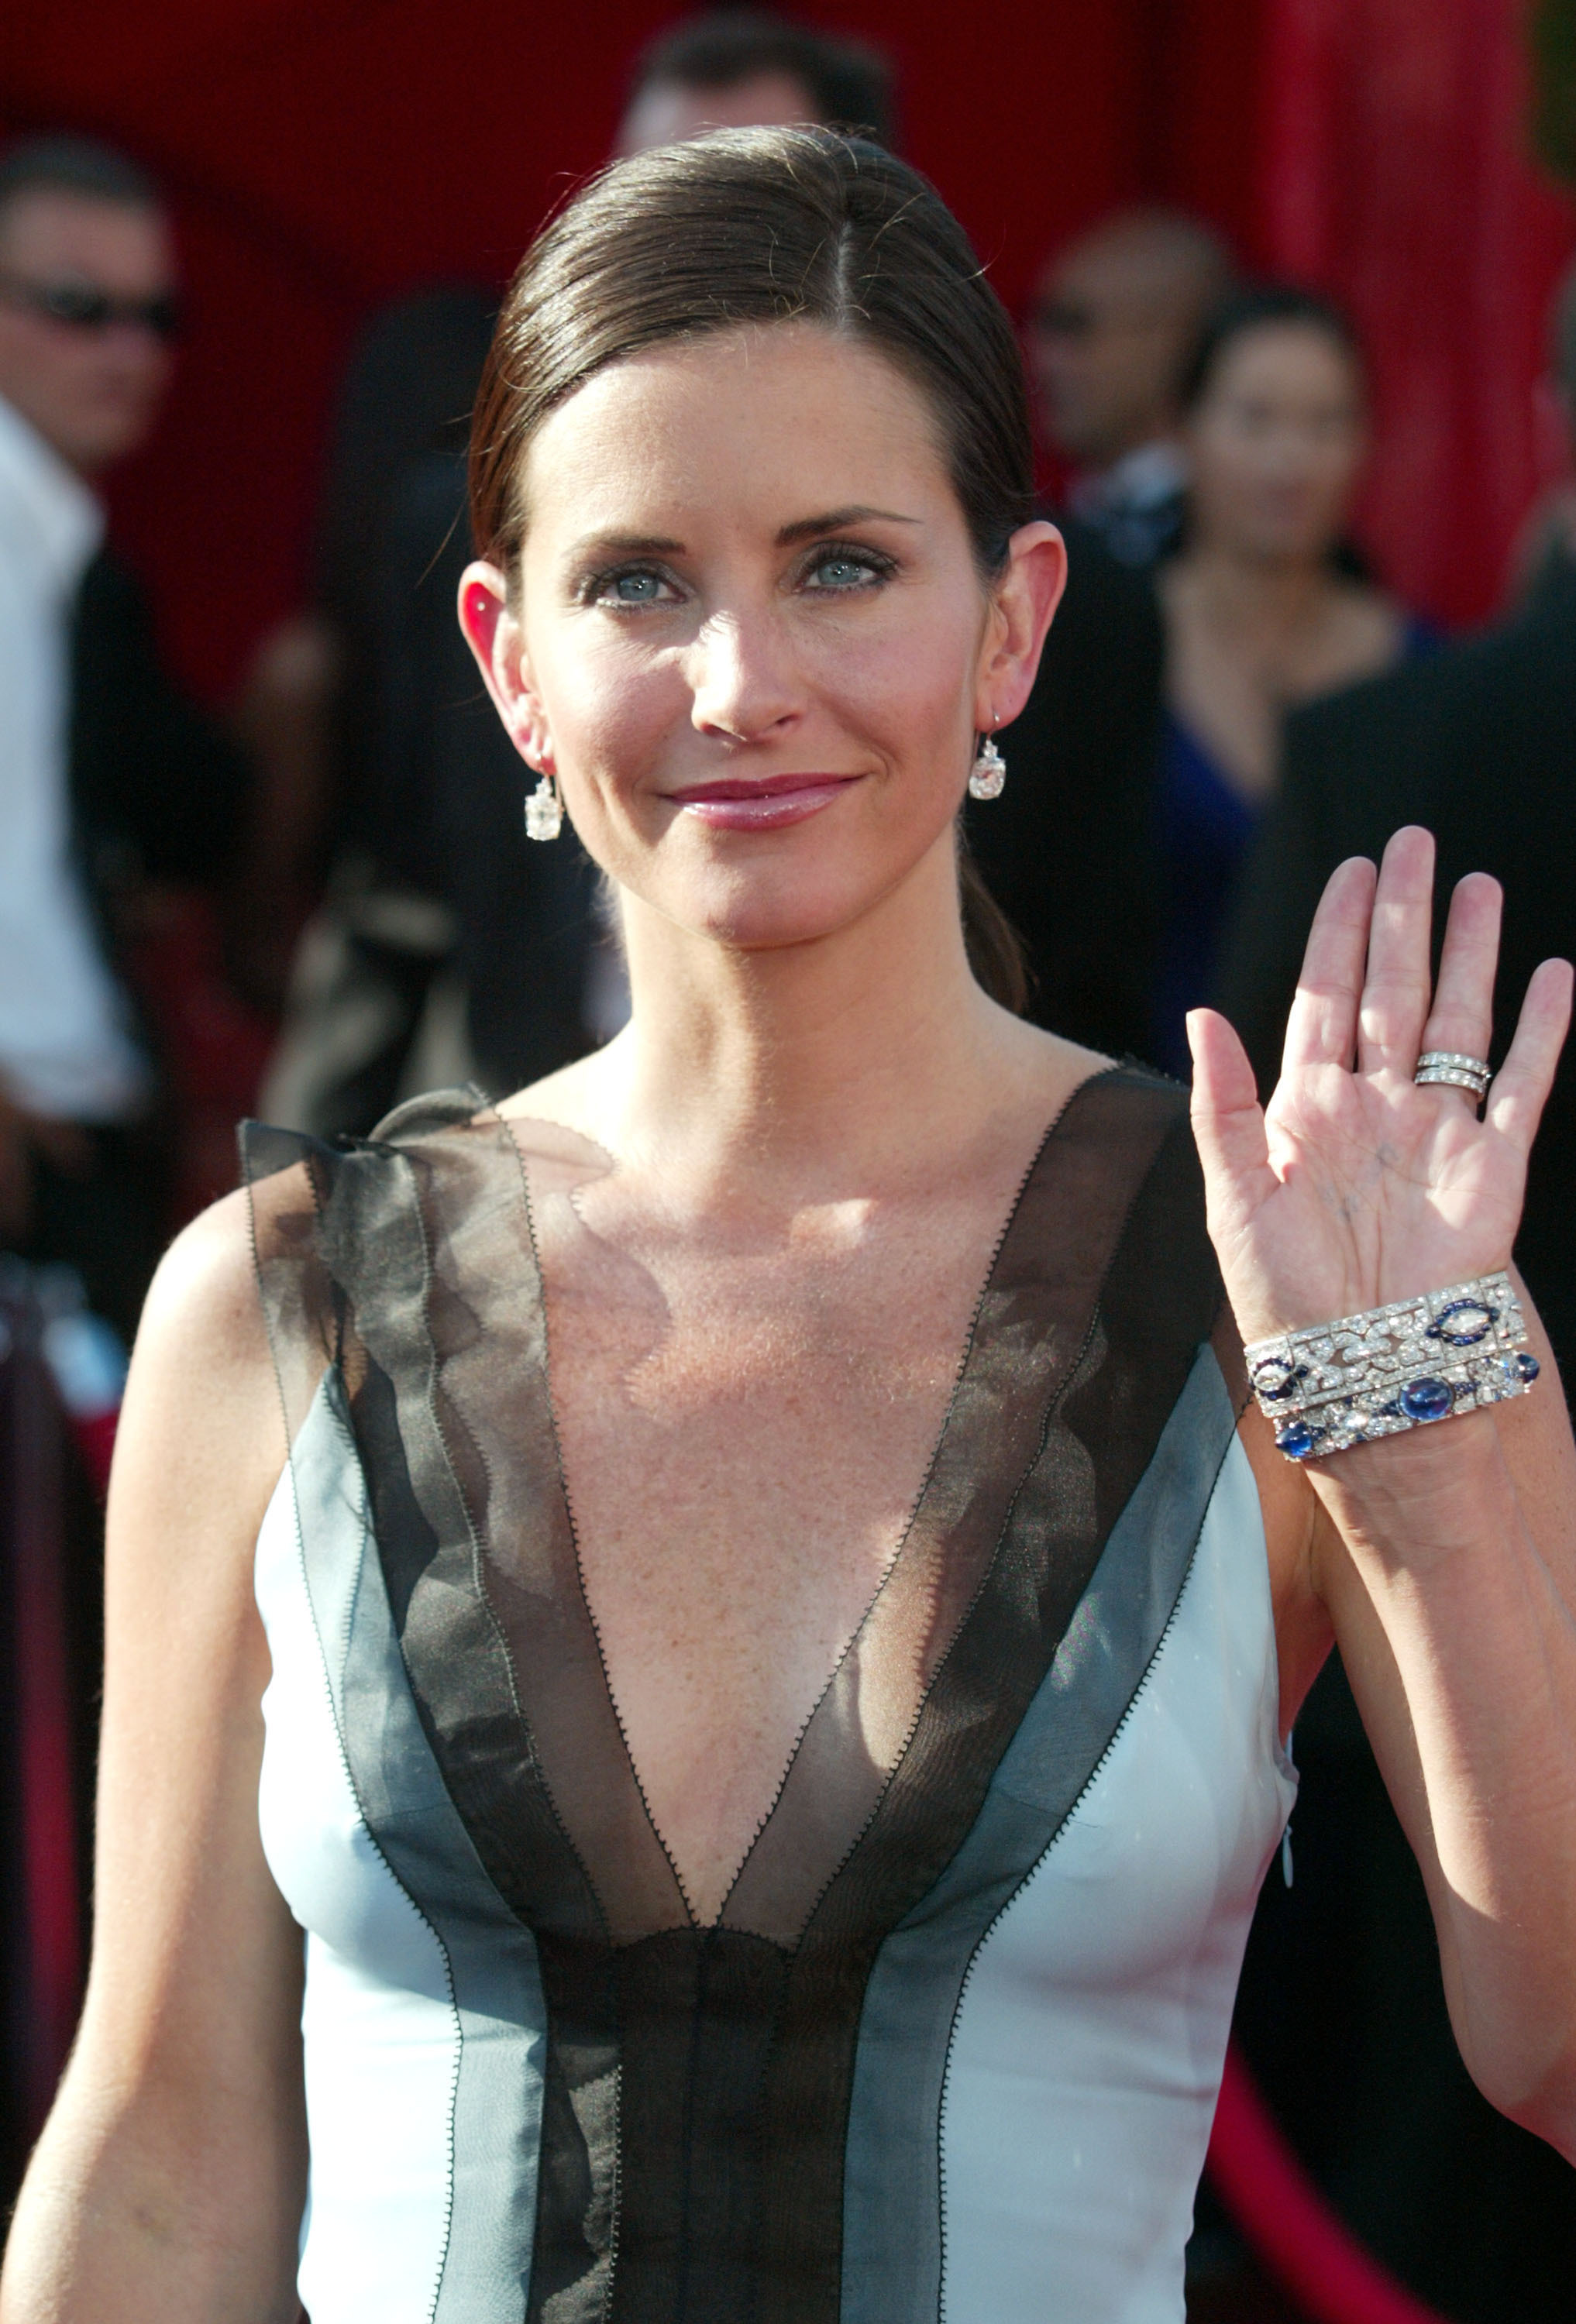 Courteney Cox attends the 55th Annual Primetime Emmy Awards at The Shrine Theater in Los Angeles on Sept. 21, 2003.